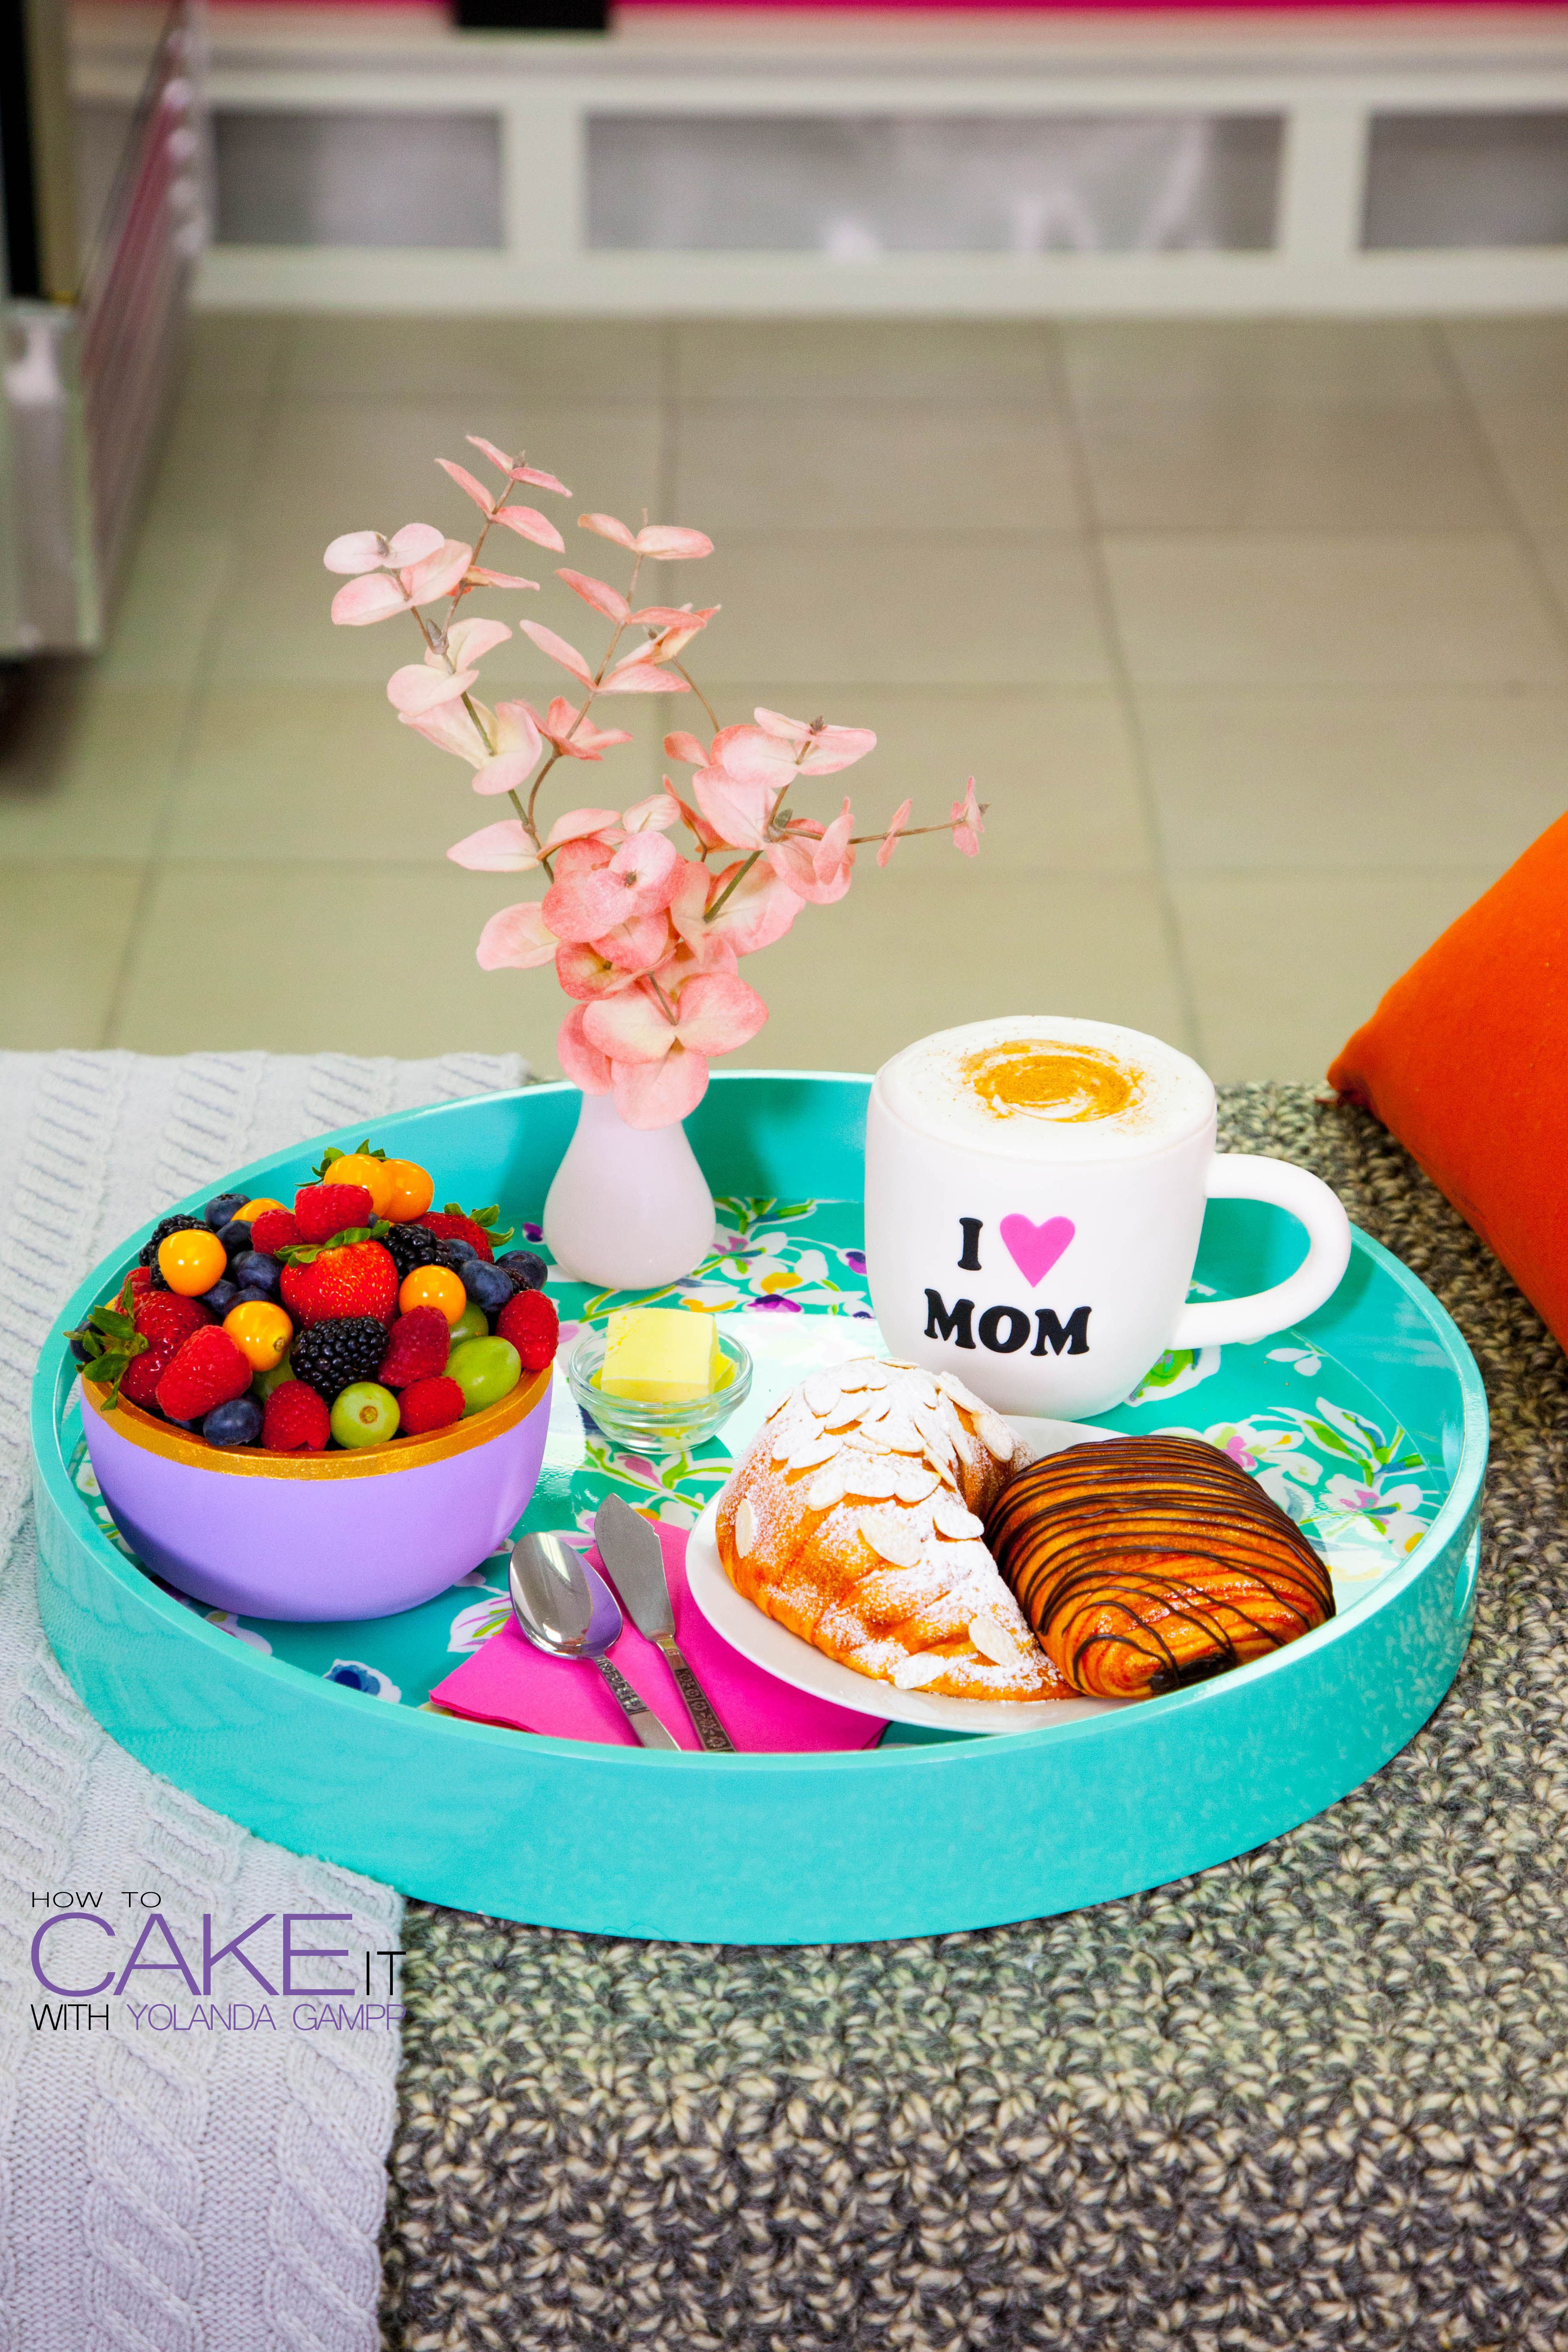 Learn how to make your own BREAKFAST IN BED cakes for Mother's Day on HowToCakeIt.com!